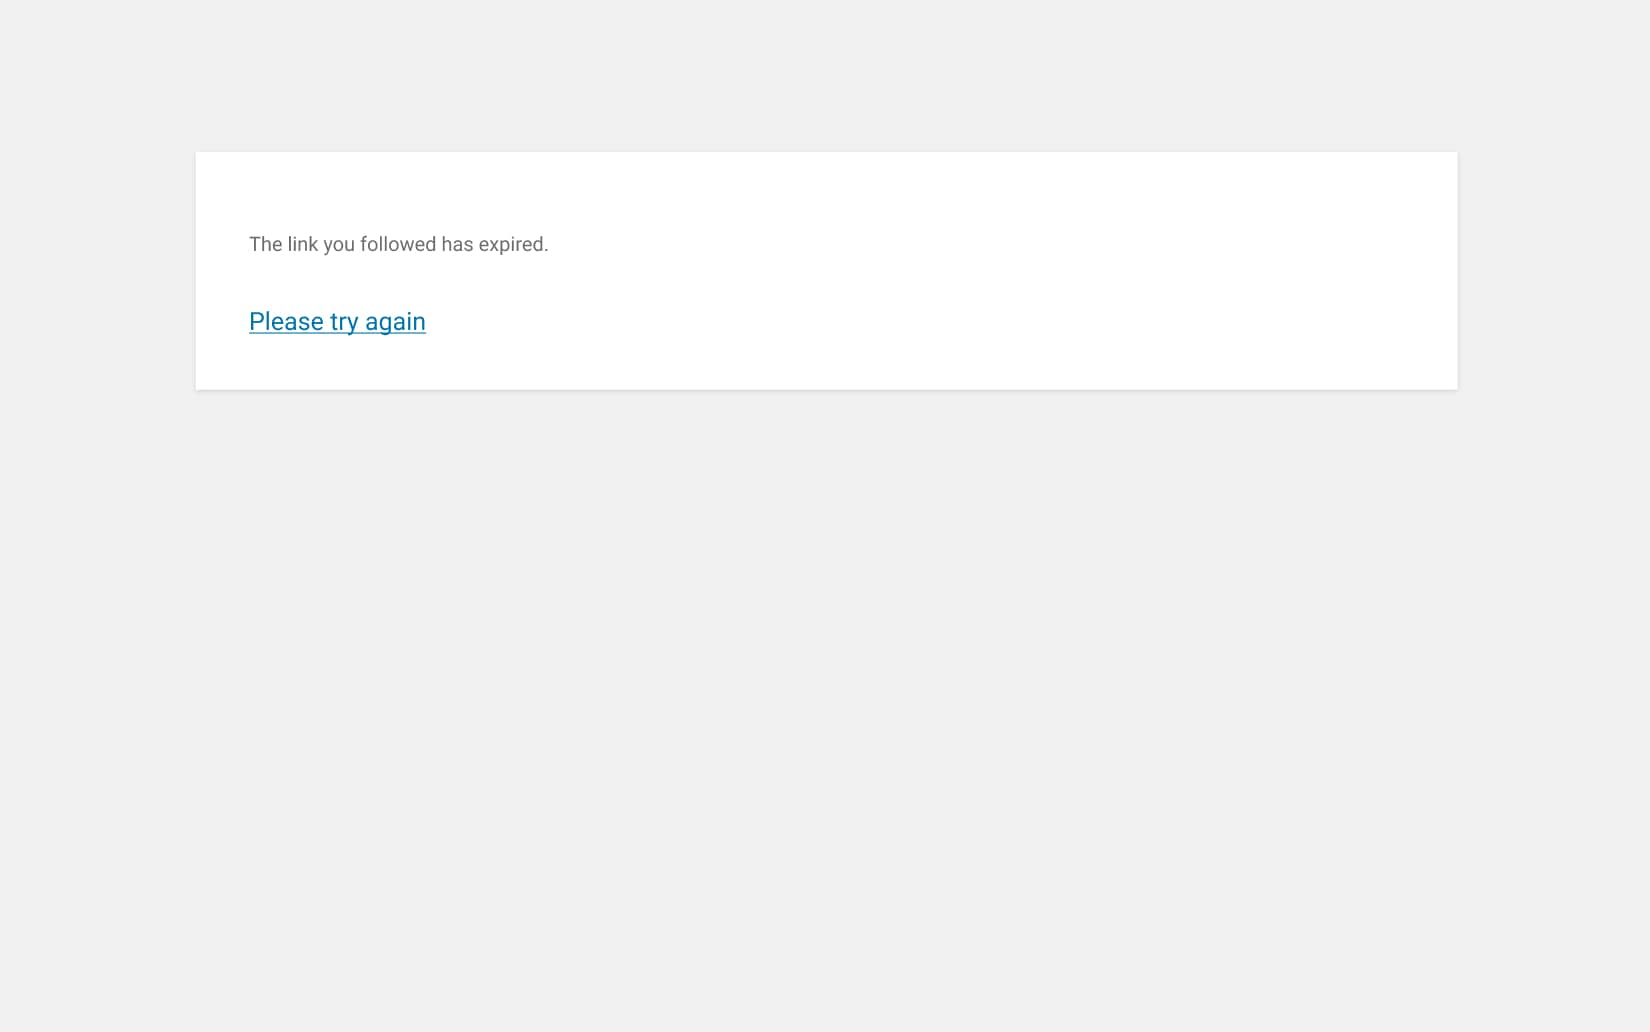 How to fix the link your followed has expired error in WordPress